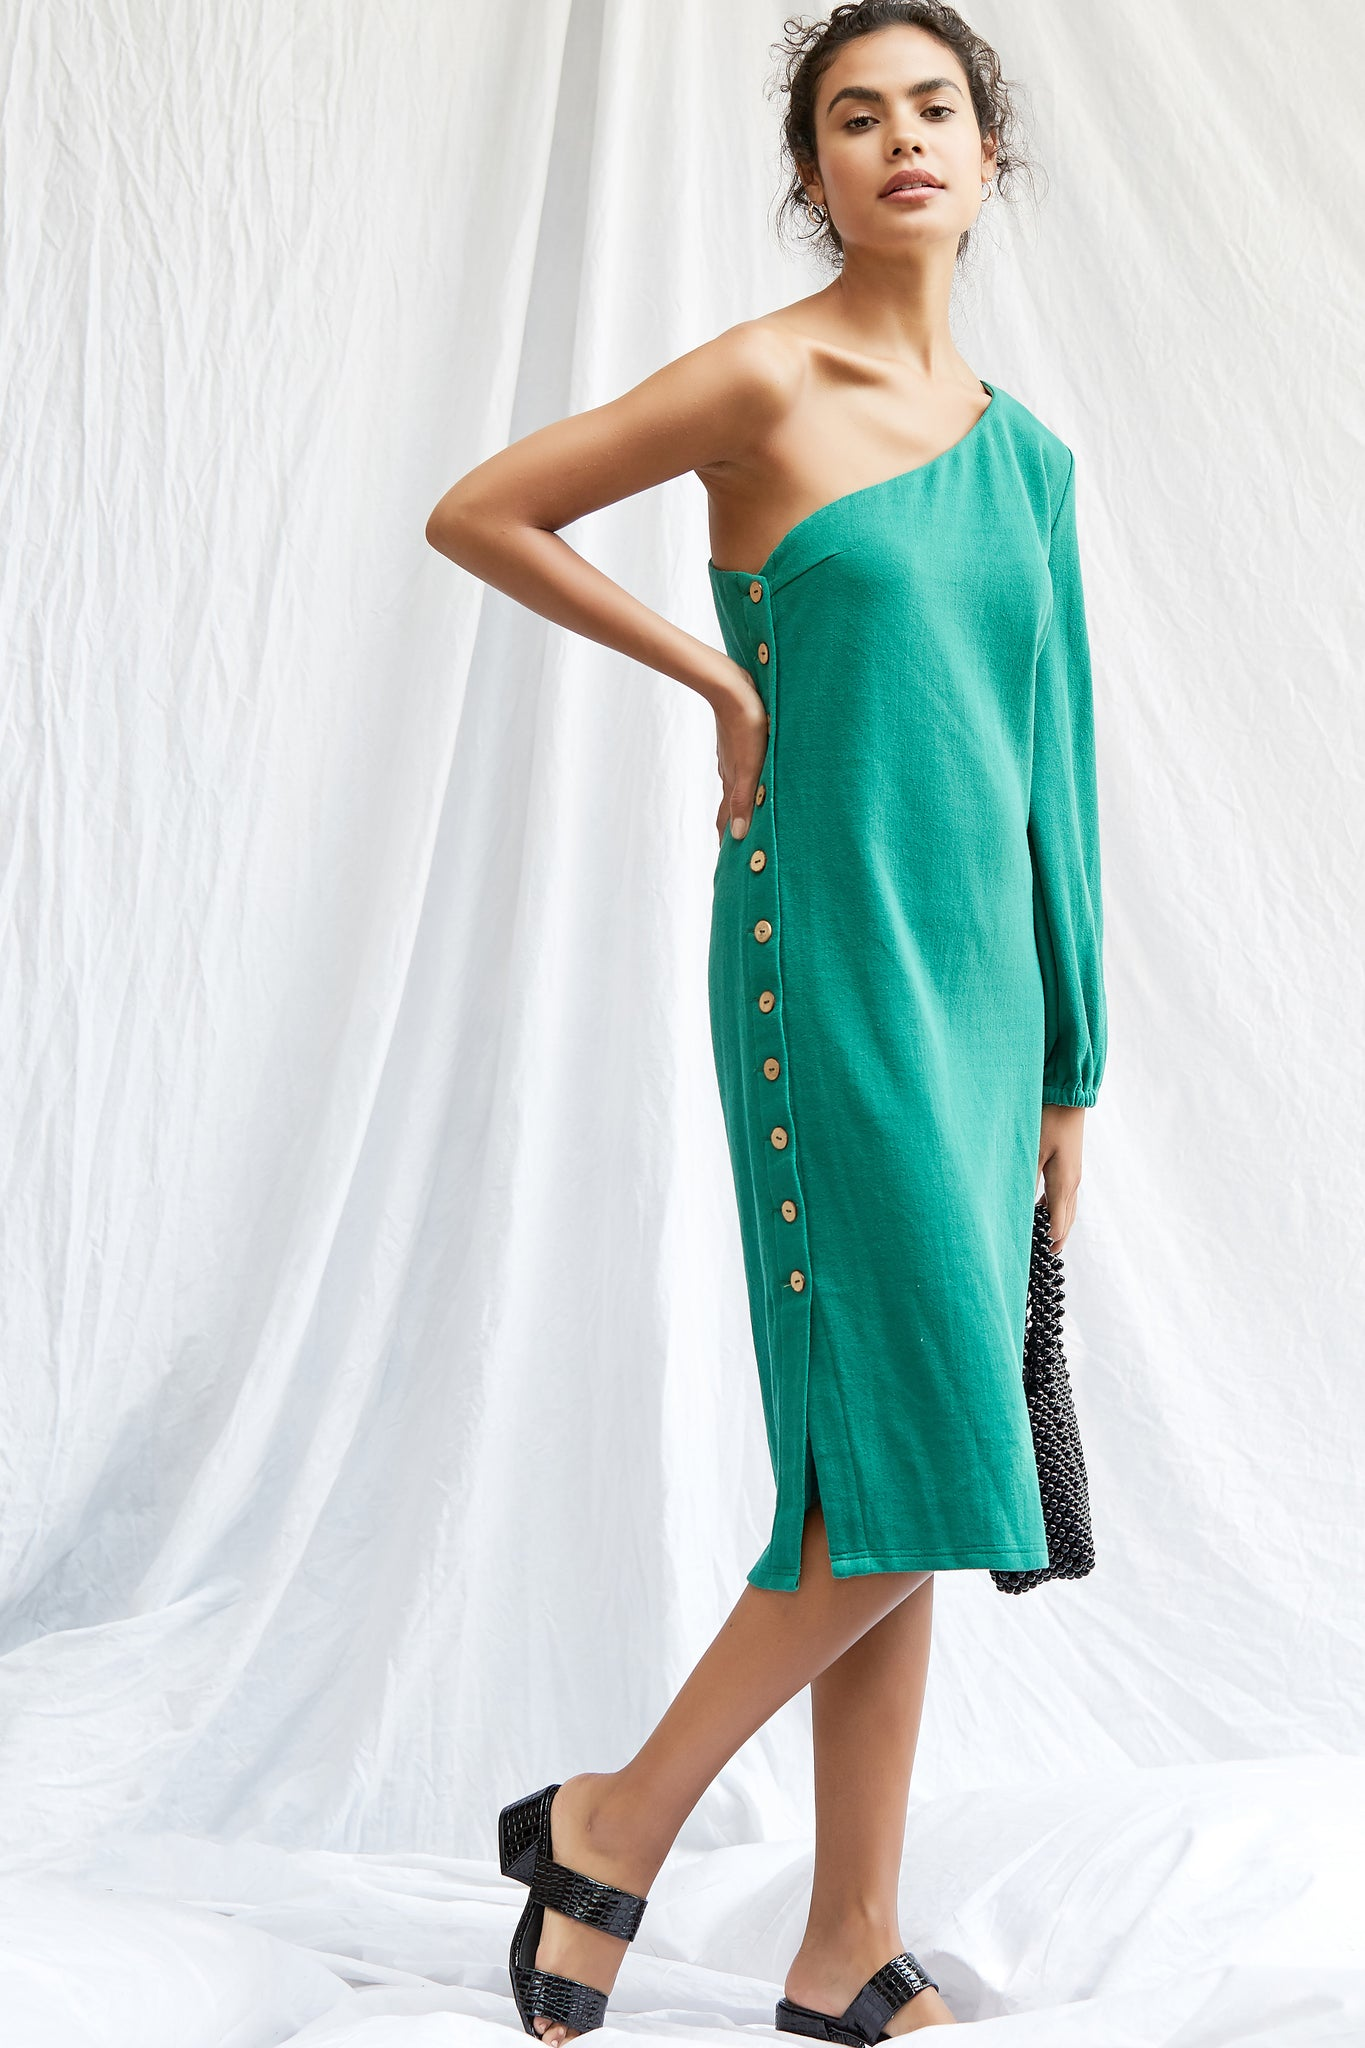 Tallulah Dress - Jade